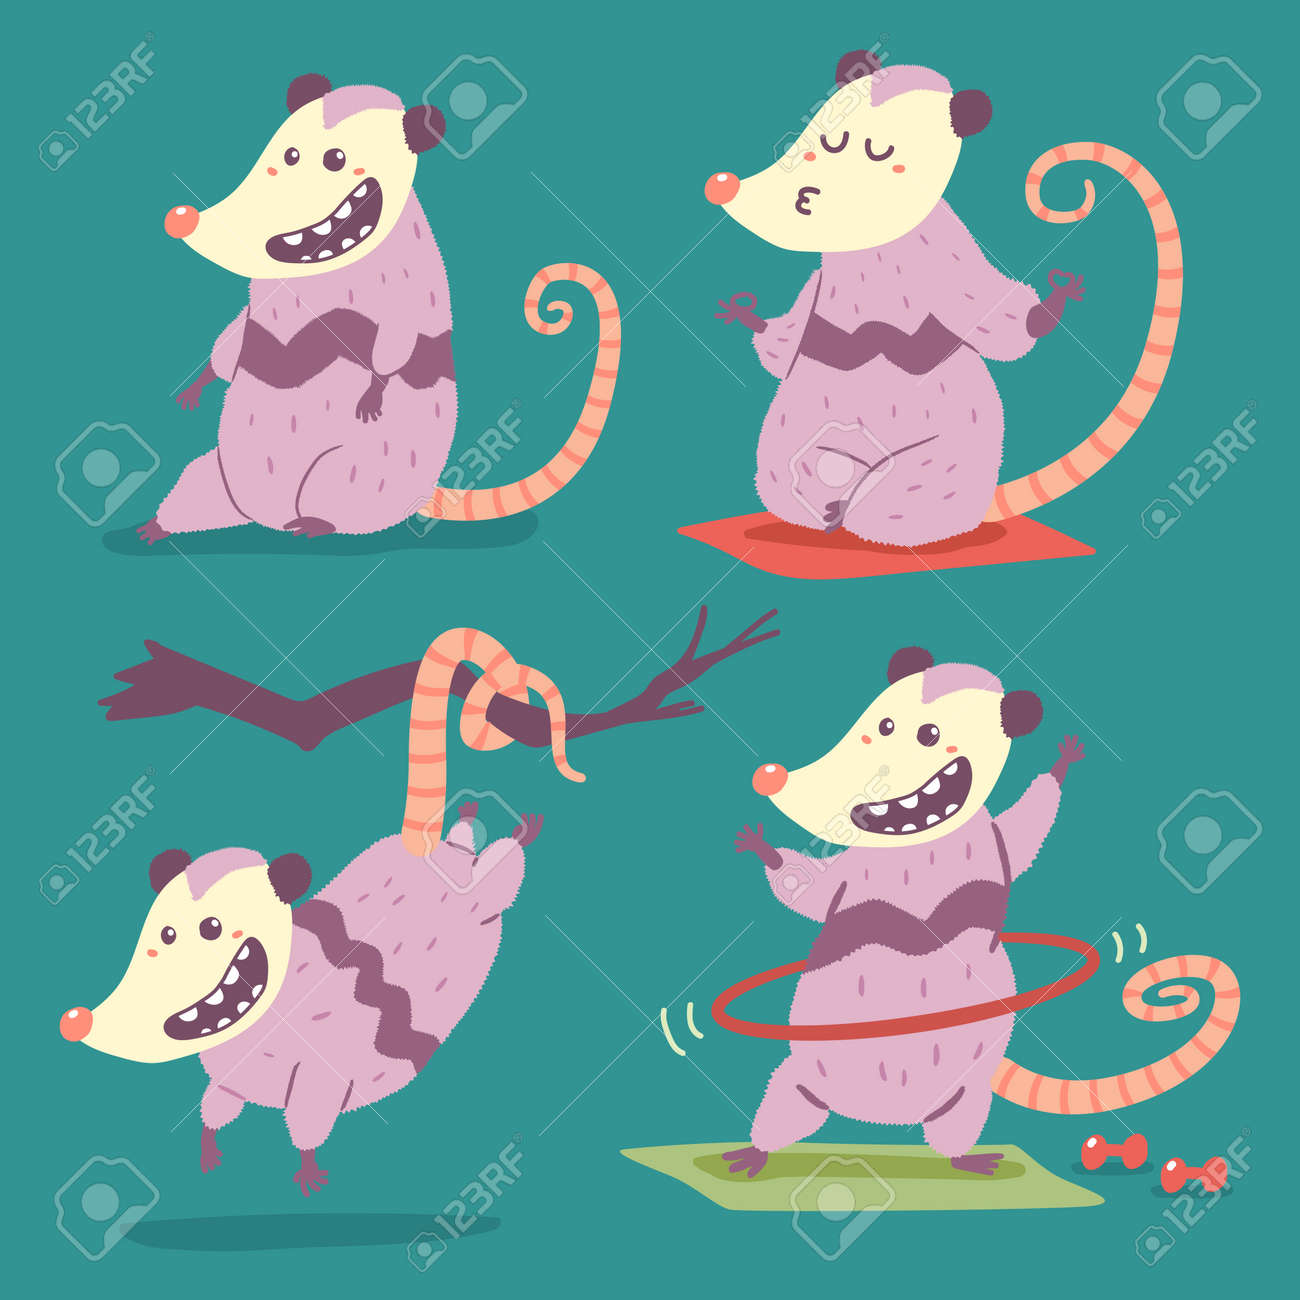 Possum vector cartoon character set isolated on background. - 173241341